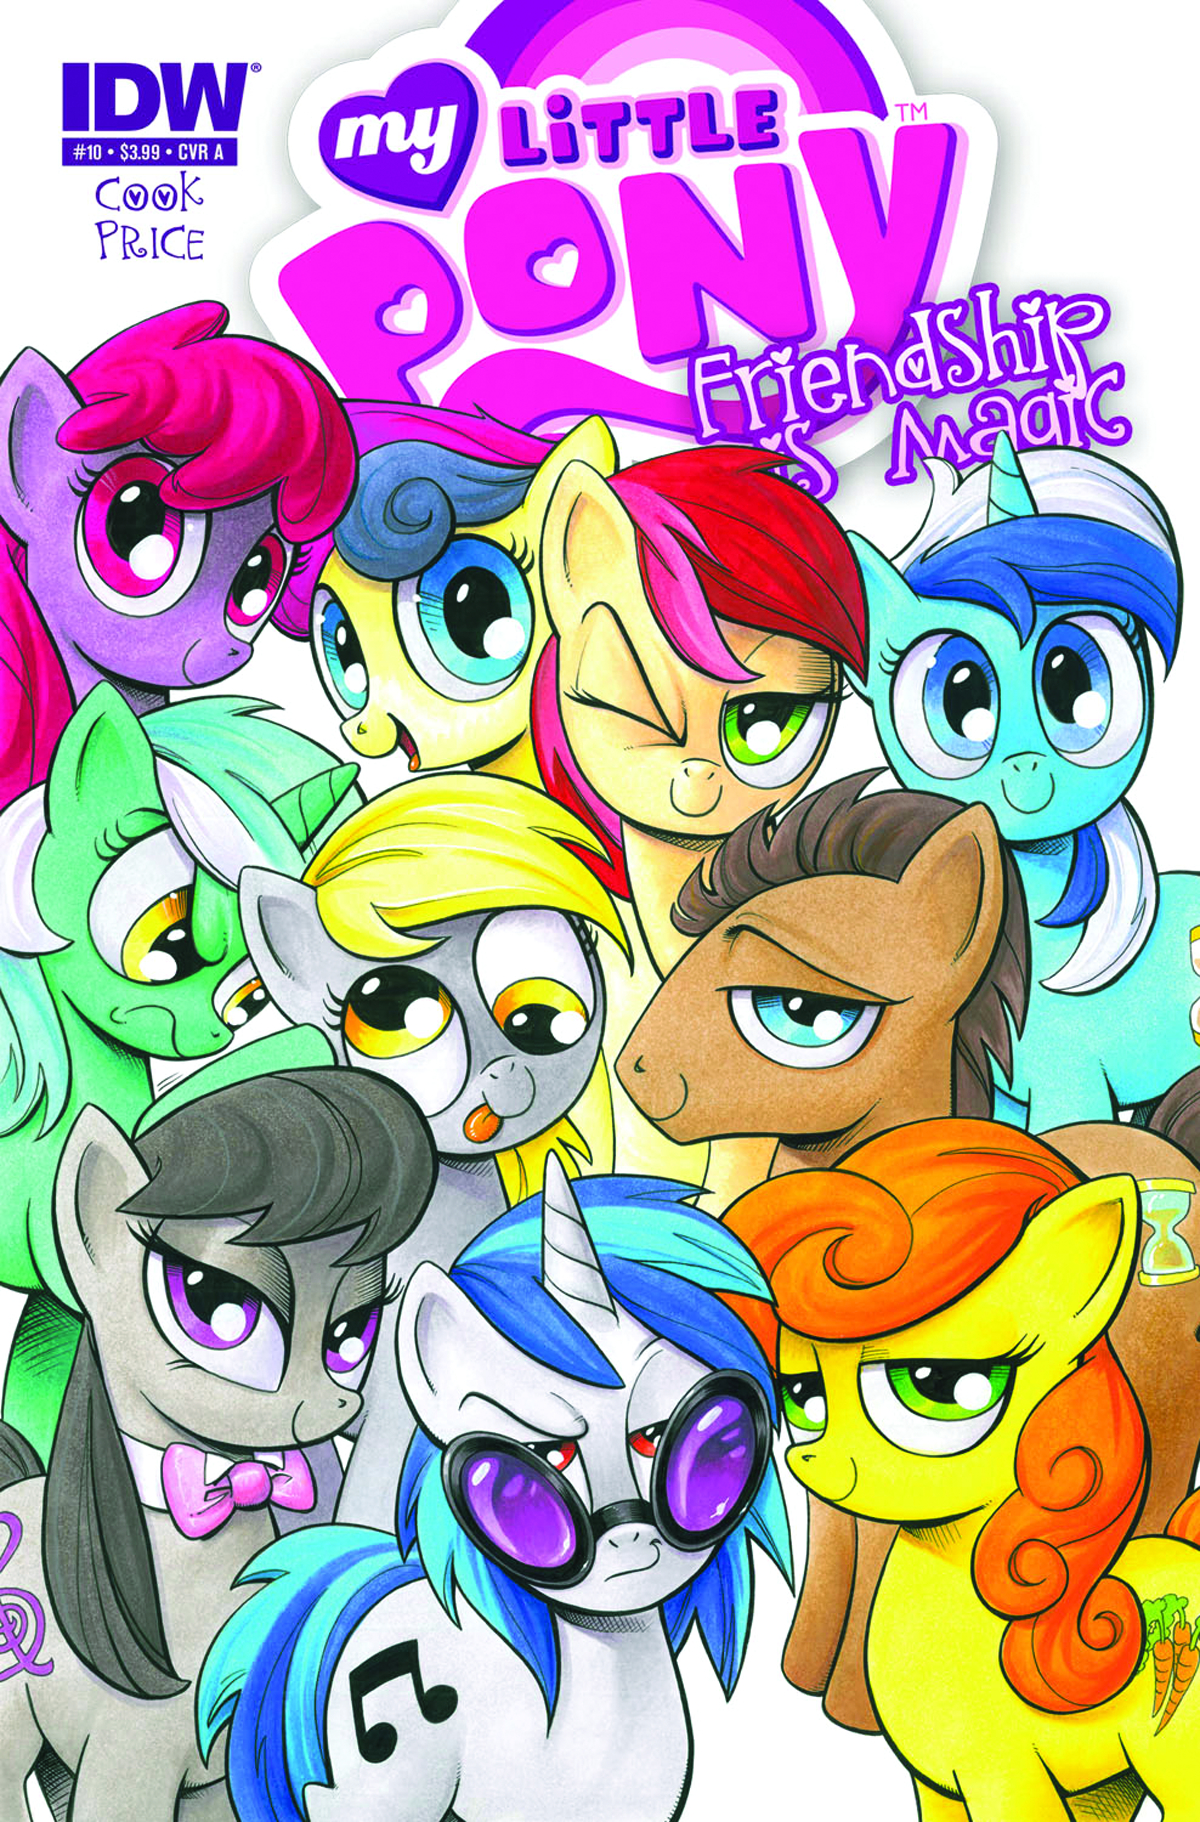 MY LITTLE PONY FRIENDSHIP IS MAGIC #10